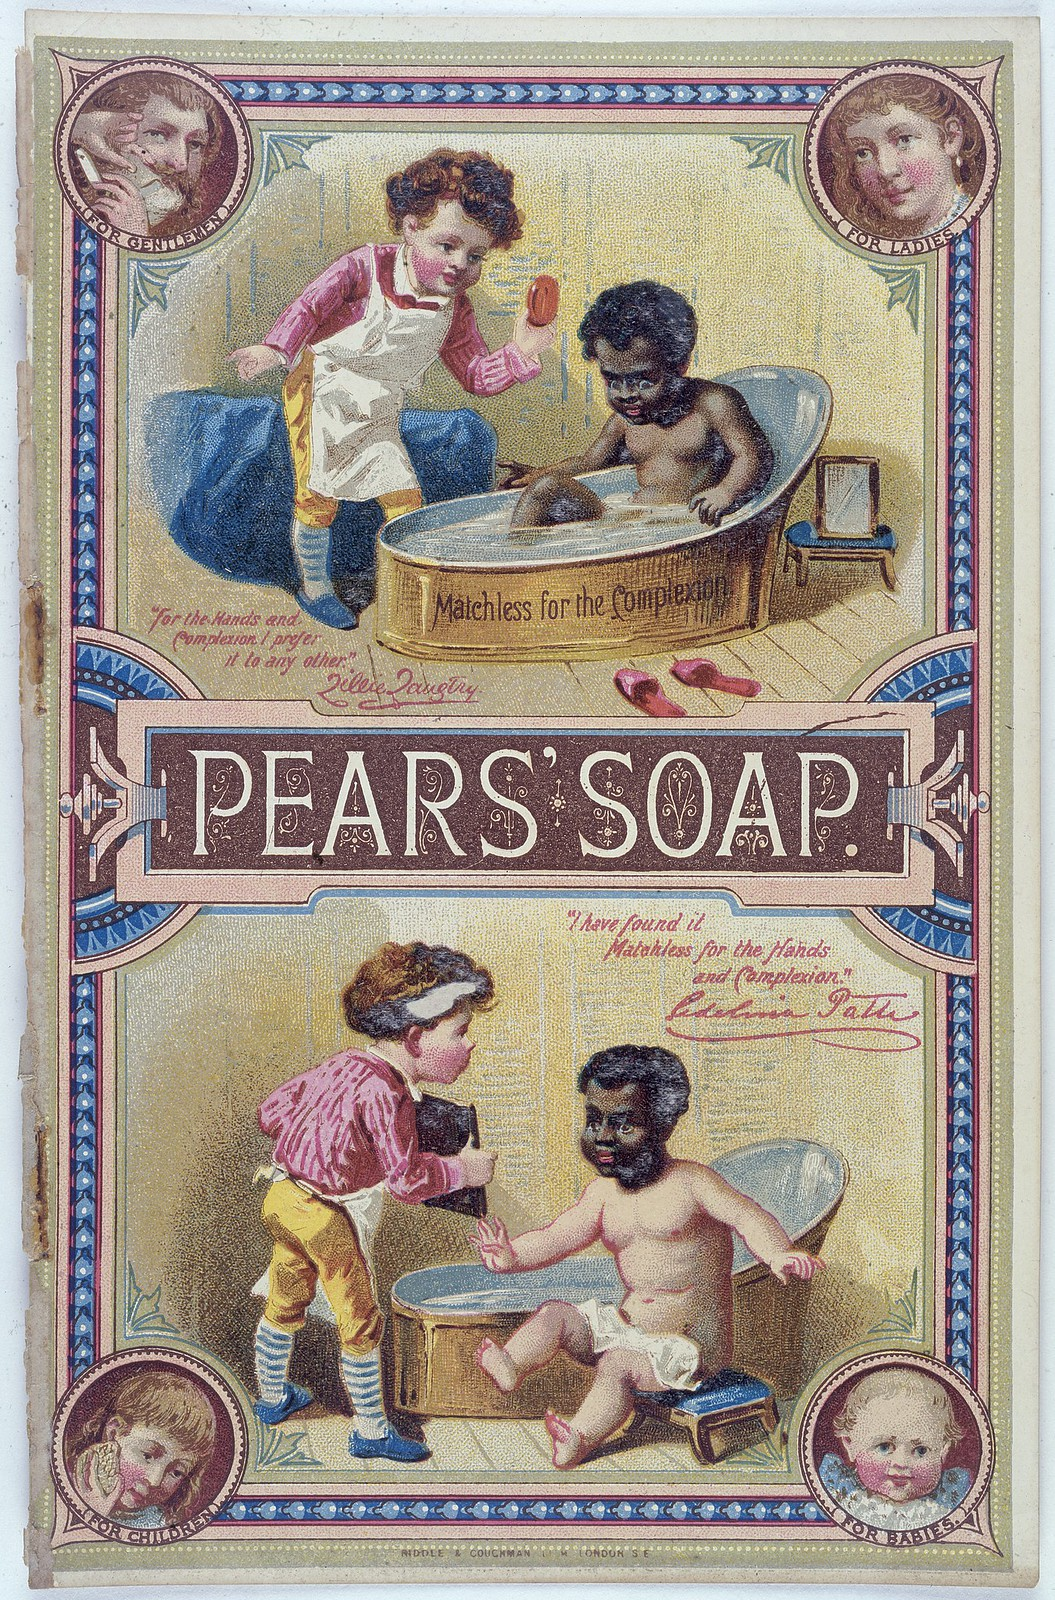 """Matchless for the Complexion"", Pears' Soap advertisement. Photo credit: Wikimedia Commons [Licensed under CC-BY-4.0]"